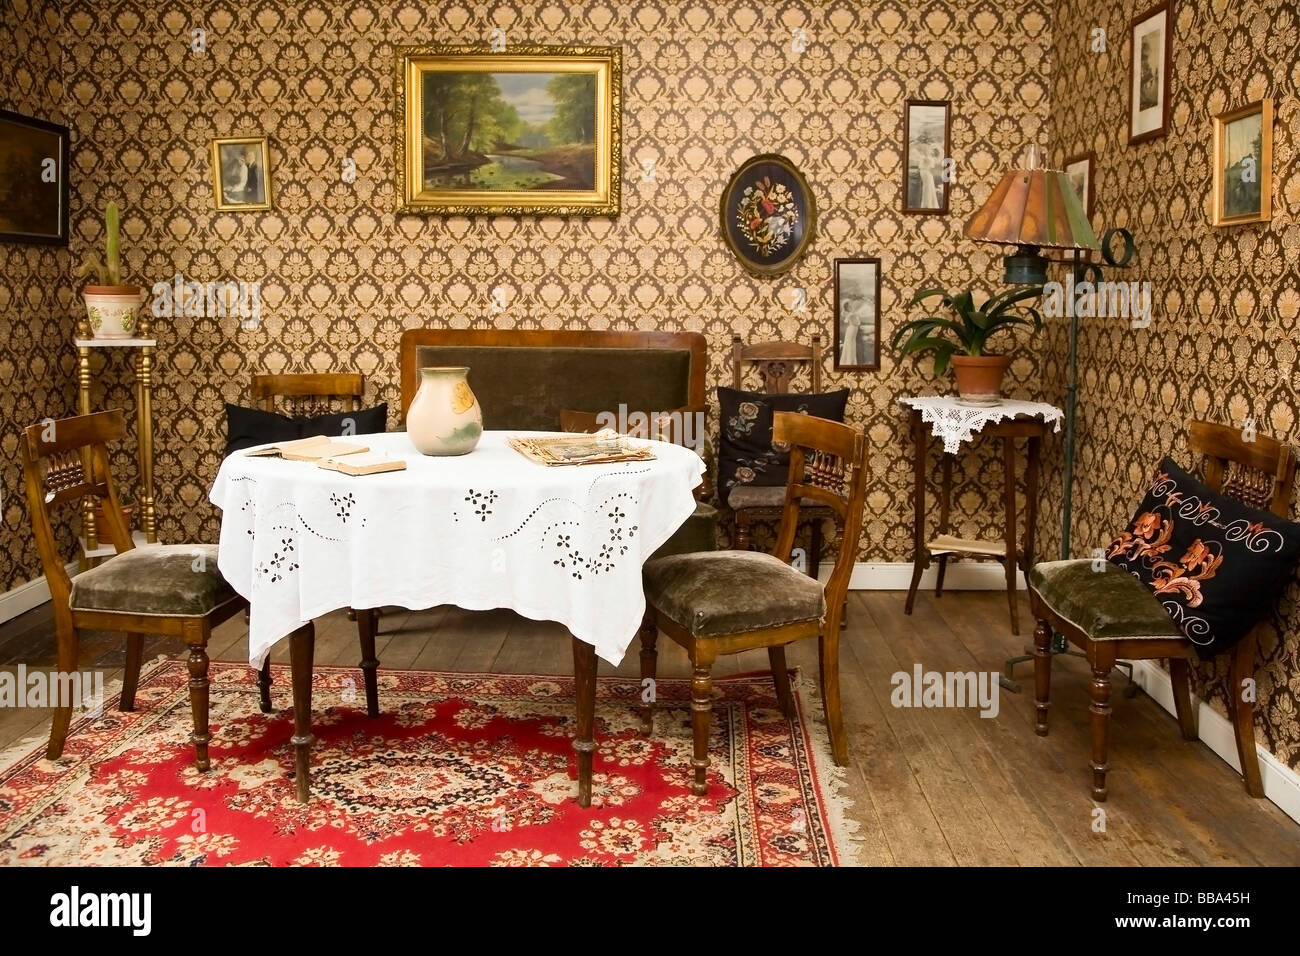 Old sitting room interior from the 16s, Denmark, Europe Stock